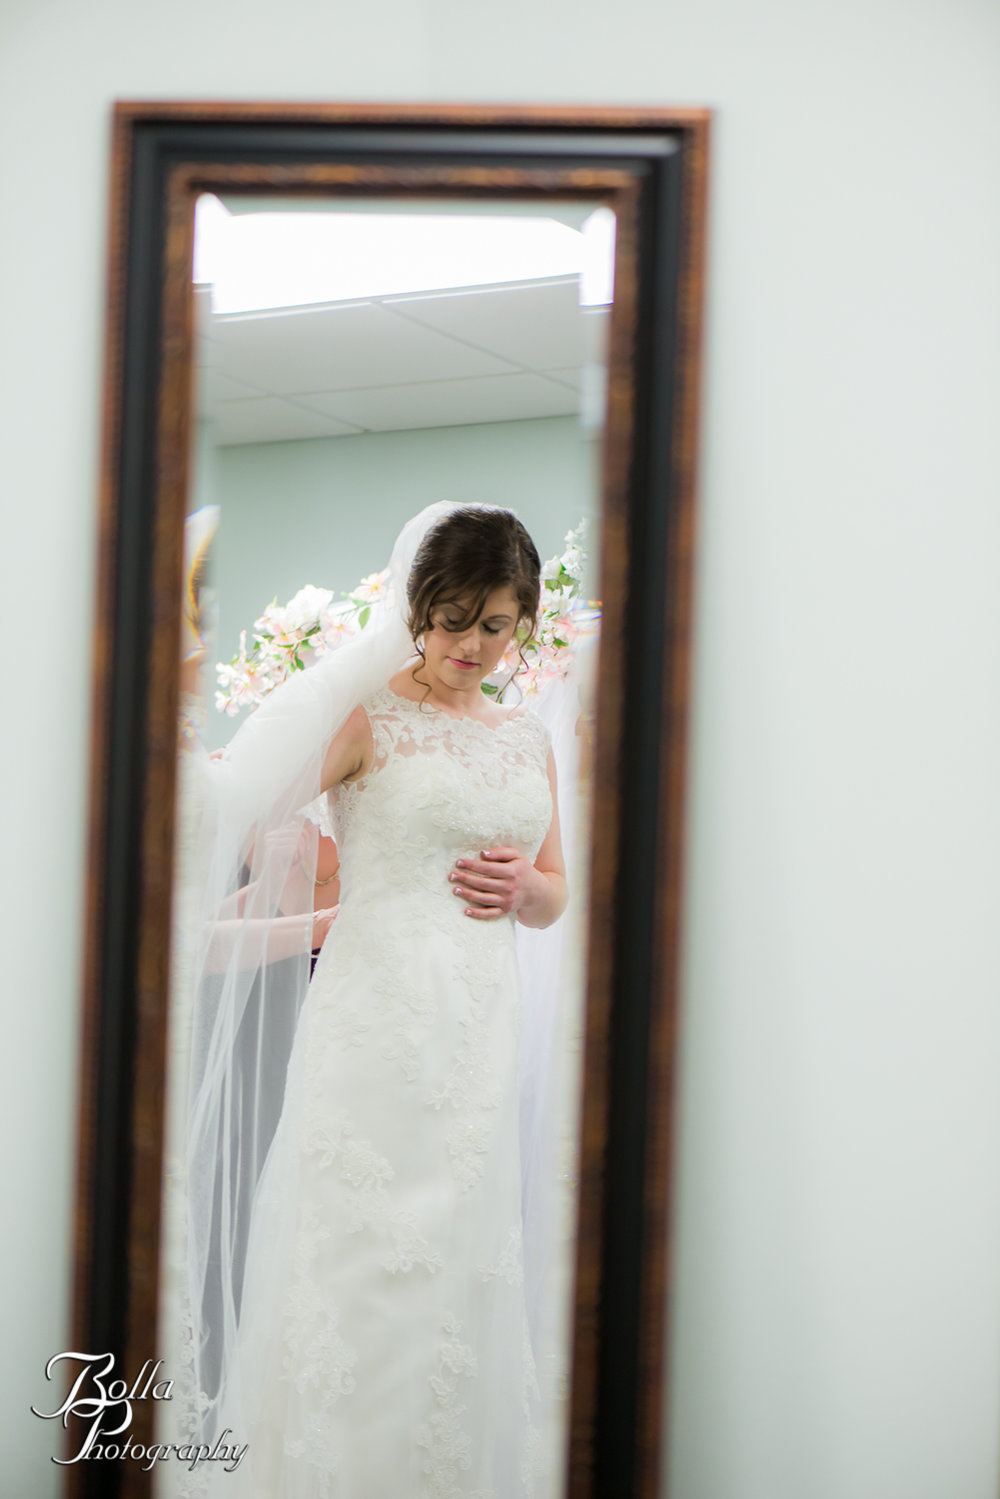 Bolla_Photography_St_Louis_wedding_photographer_Alton_IL__Baptist_Church-0045.jpg